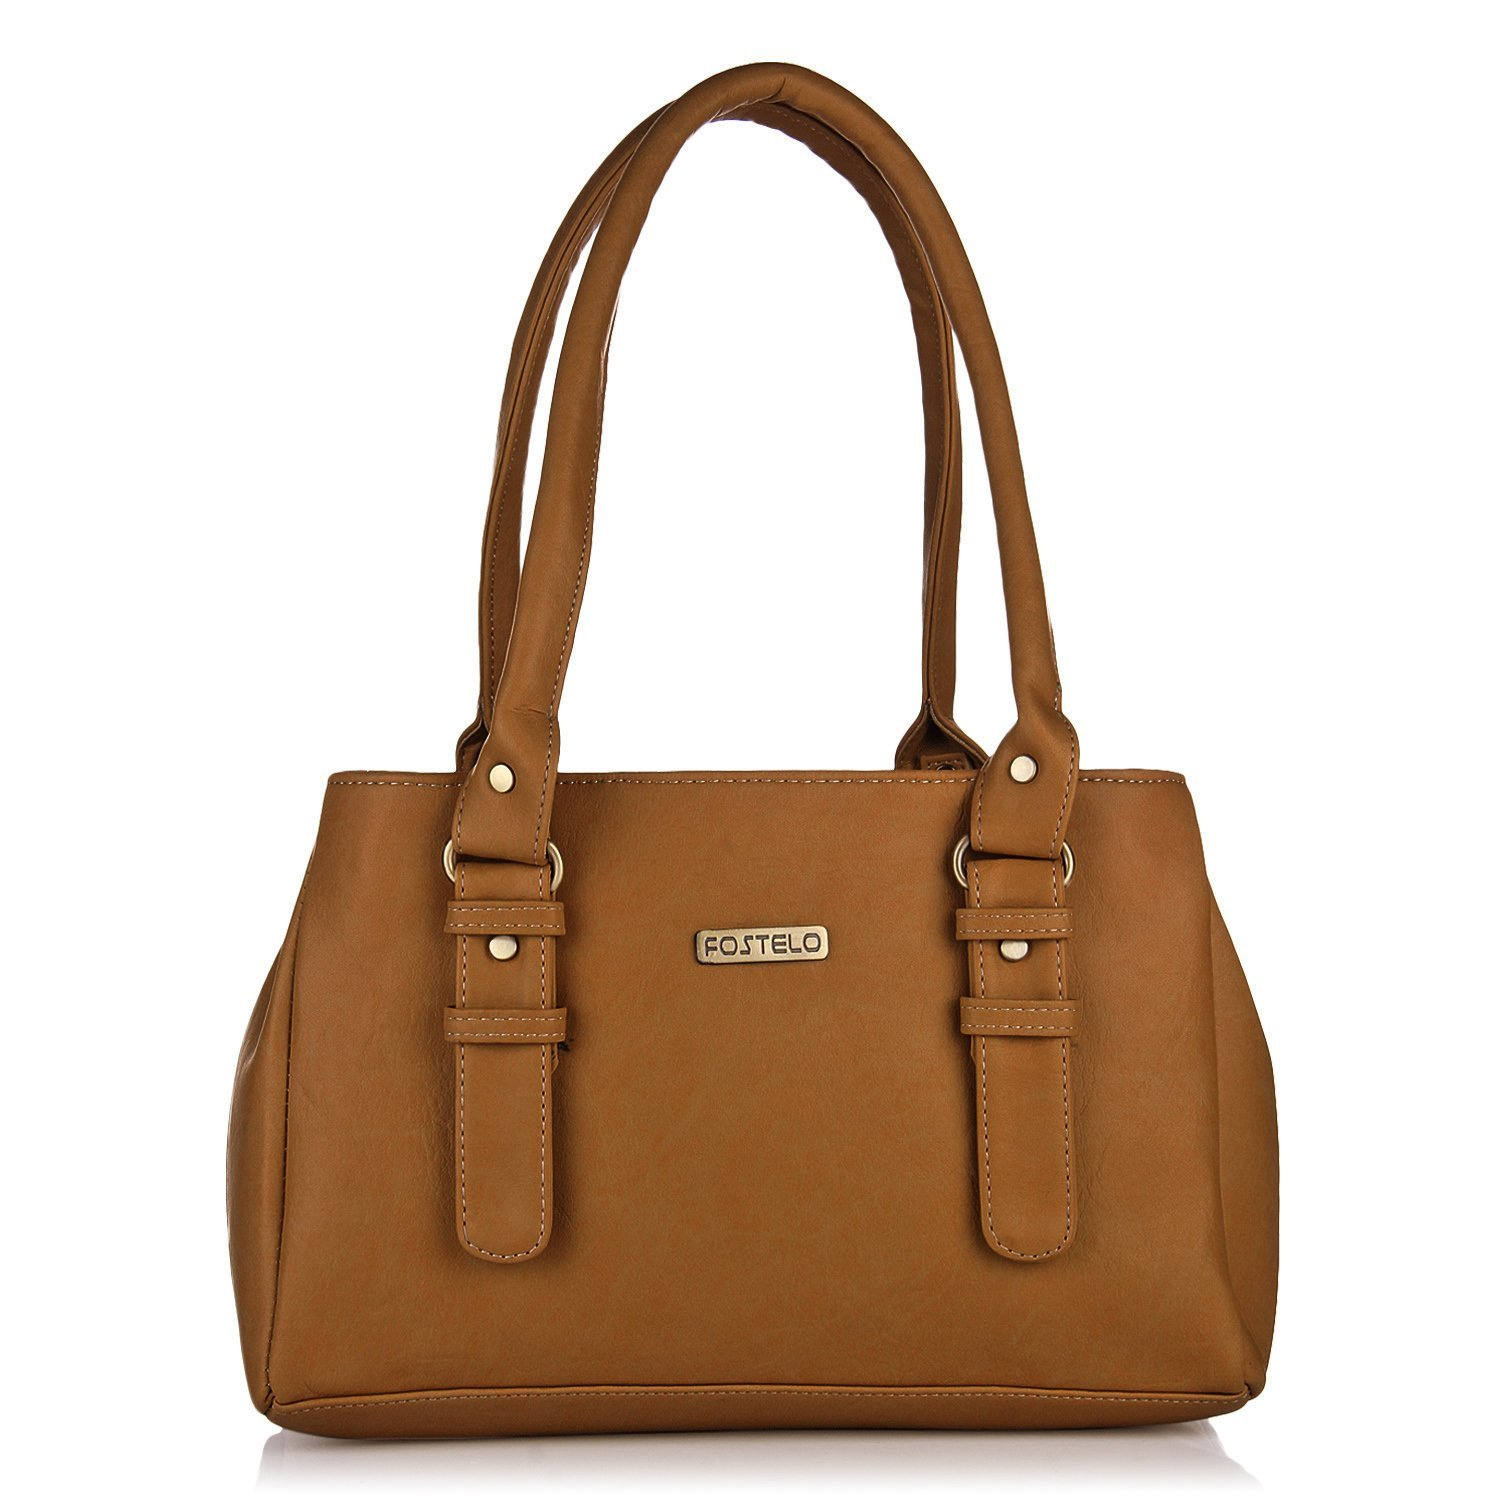 Fostelo Westside Women's Handbag (Tan): Amazon.in: Shoes & Handbags